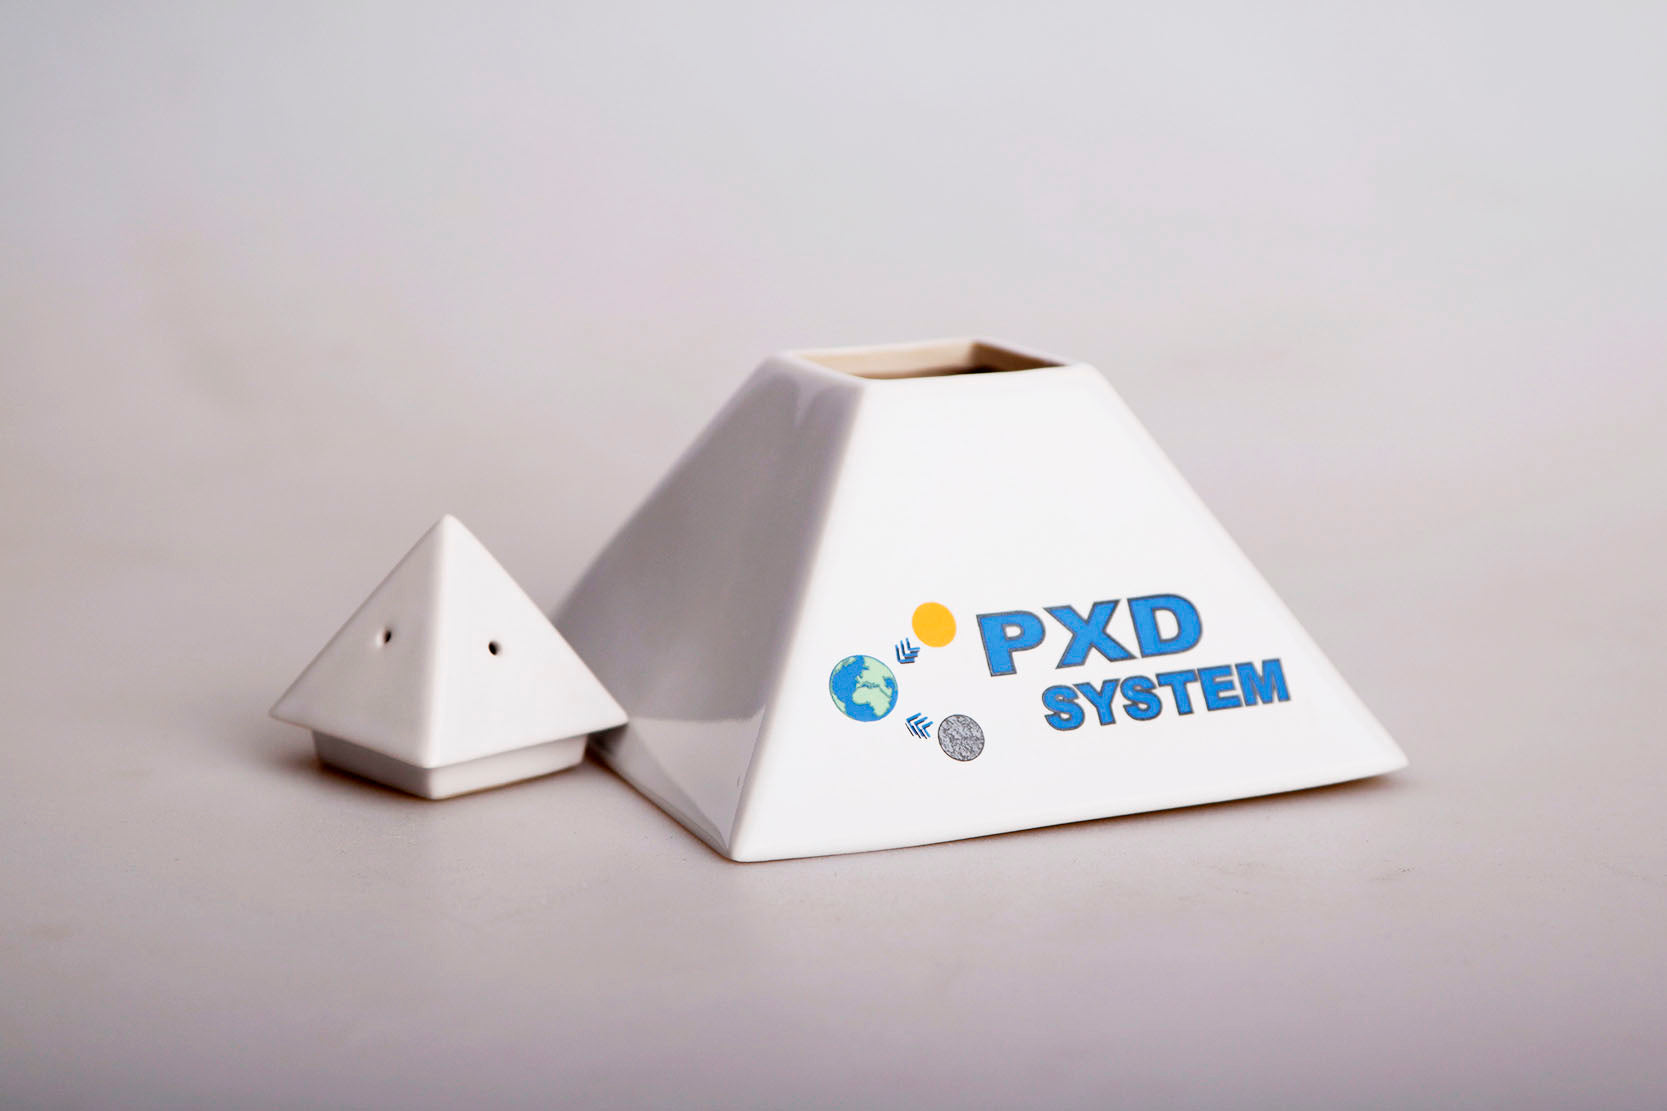 PXD Biopyramid reduces the negative effect on the human body that is emitted by electromagnetic radiation (EMR). Devices that emit electro-smog are GSM and UMTS transmitters in devices, wireless networks, radio waves and all sorts of electronic equipment.